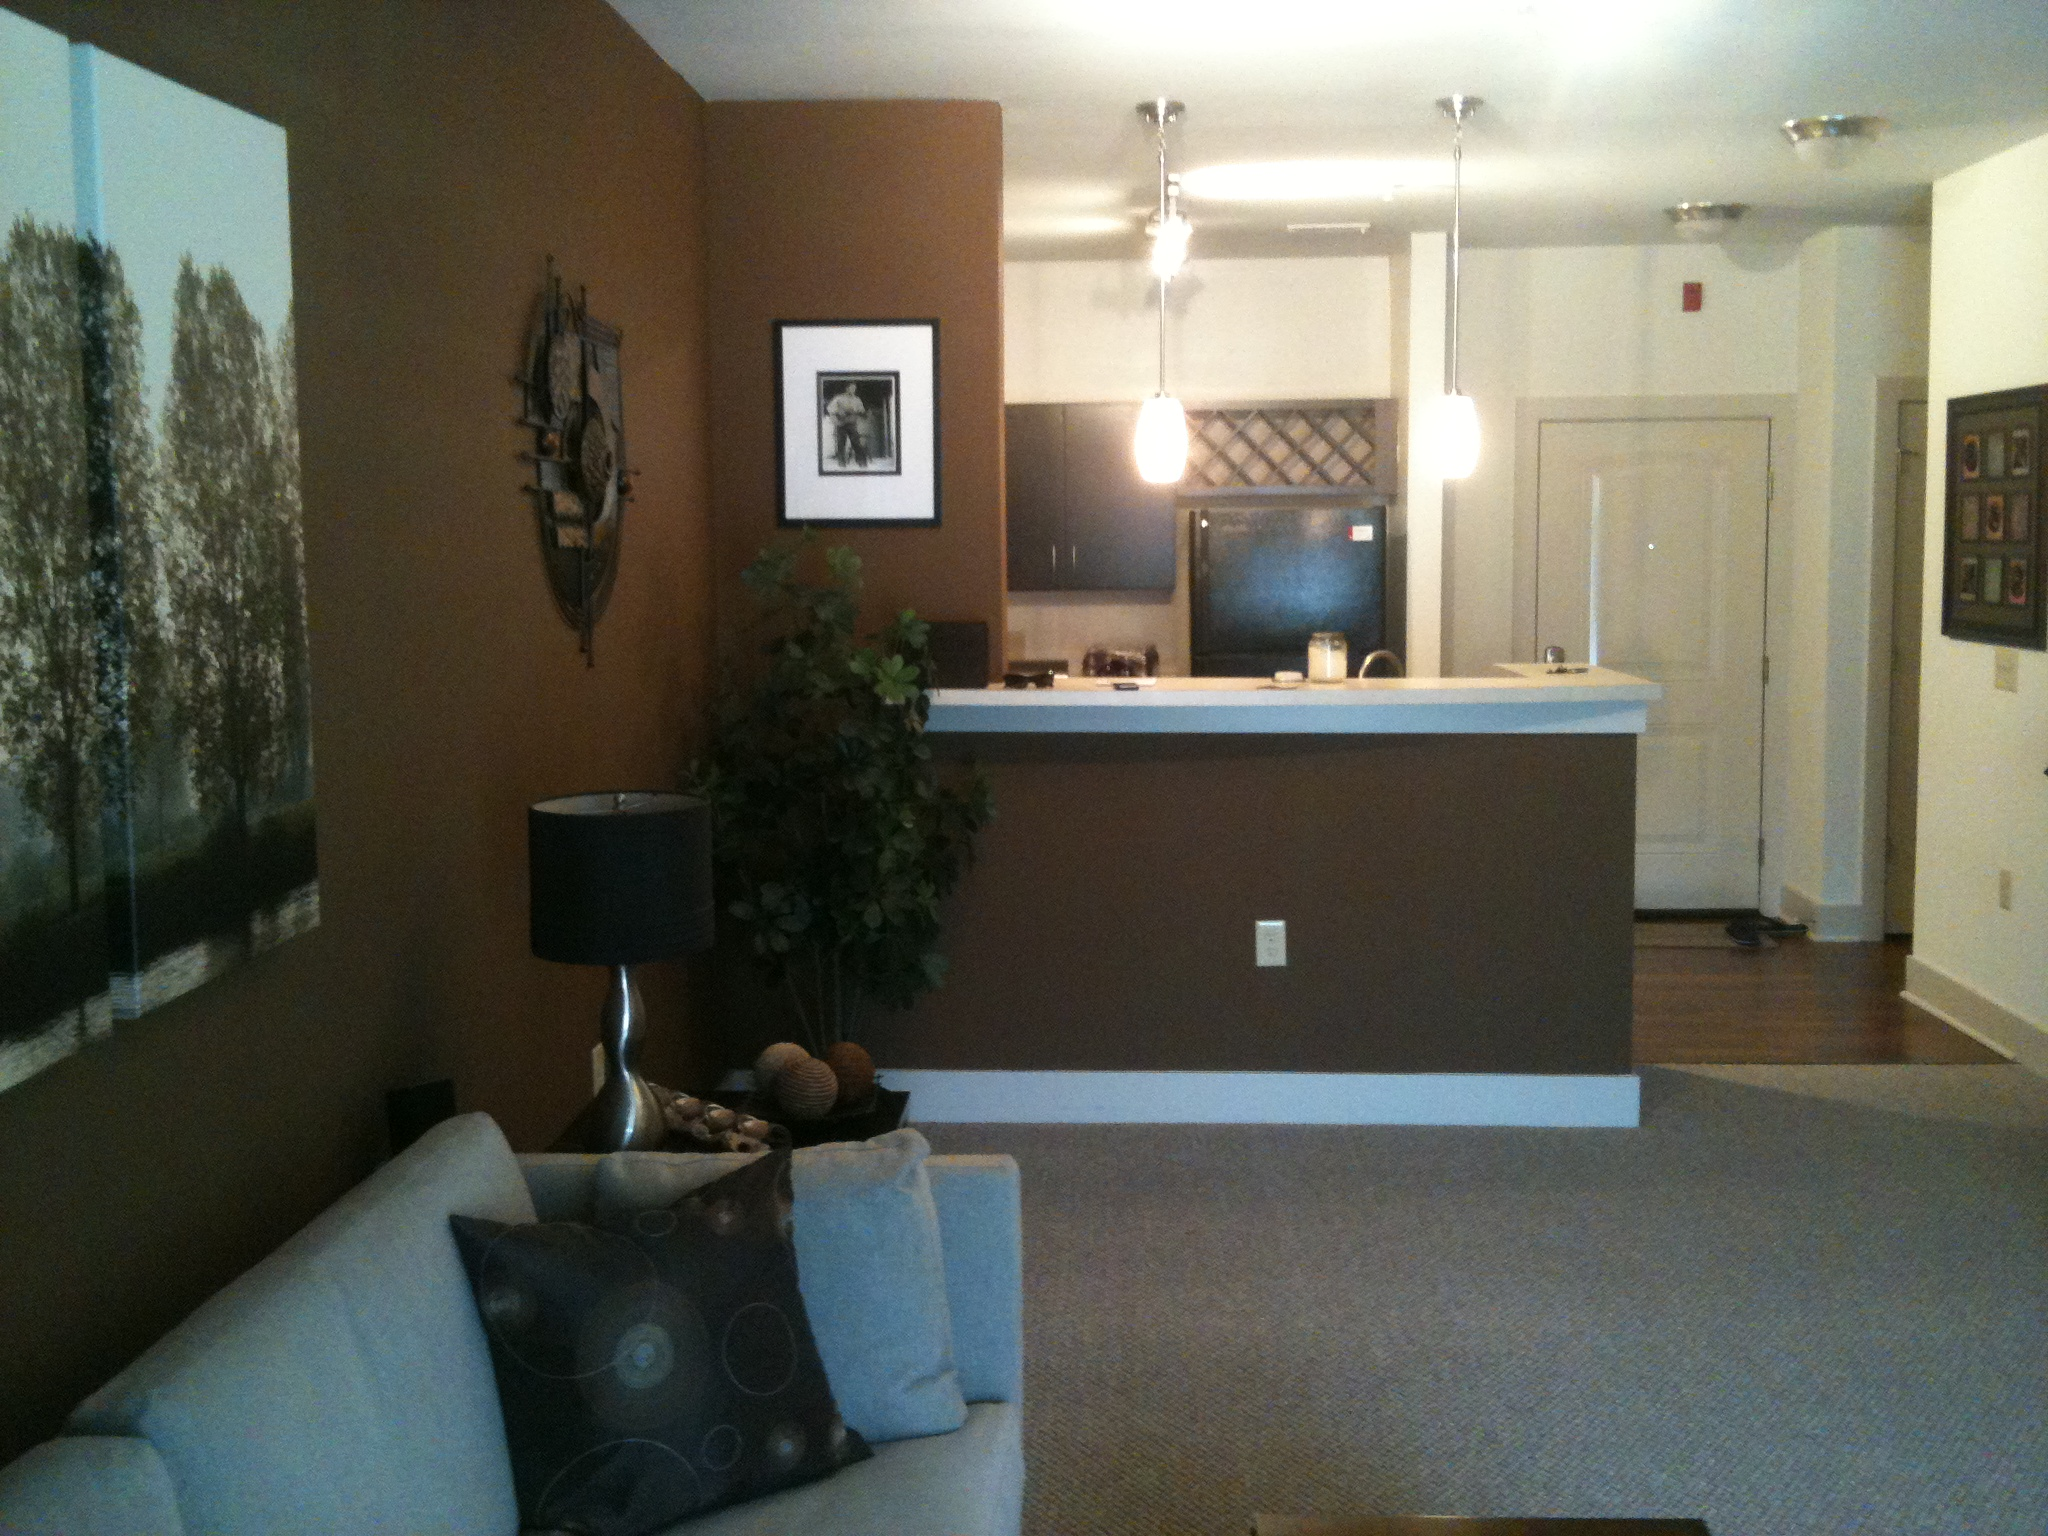 Superieur ... Bachelor Needs Advice On Living Room Paint Color Photo3 ...